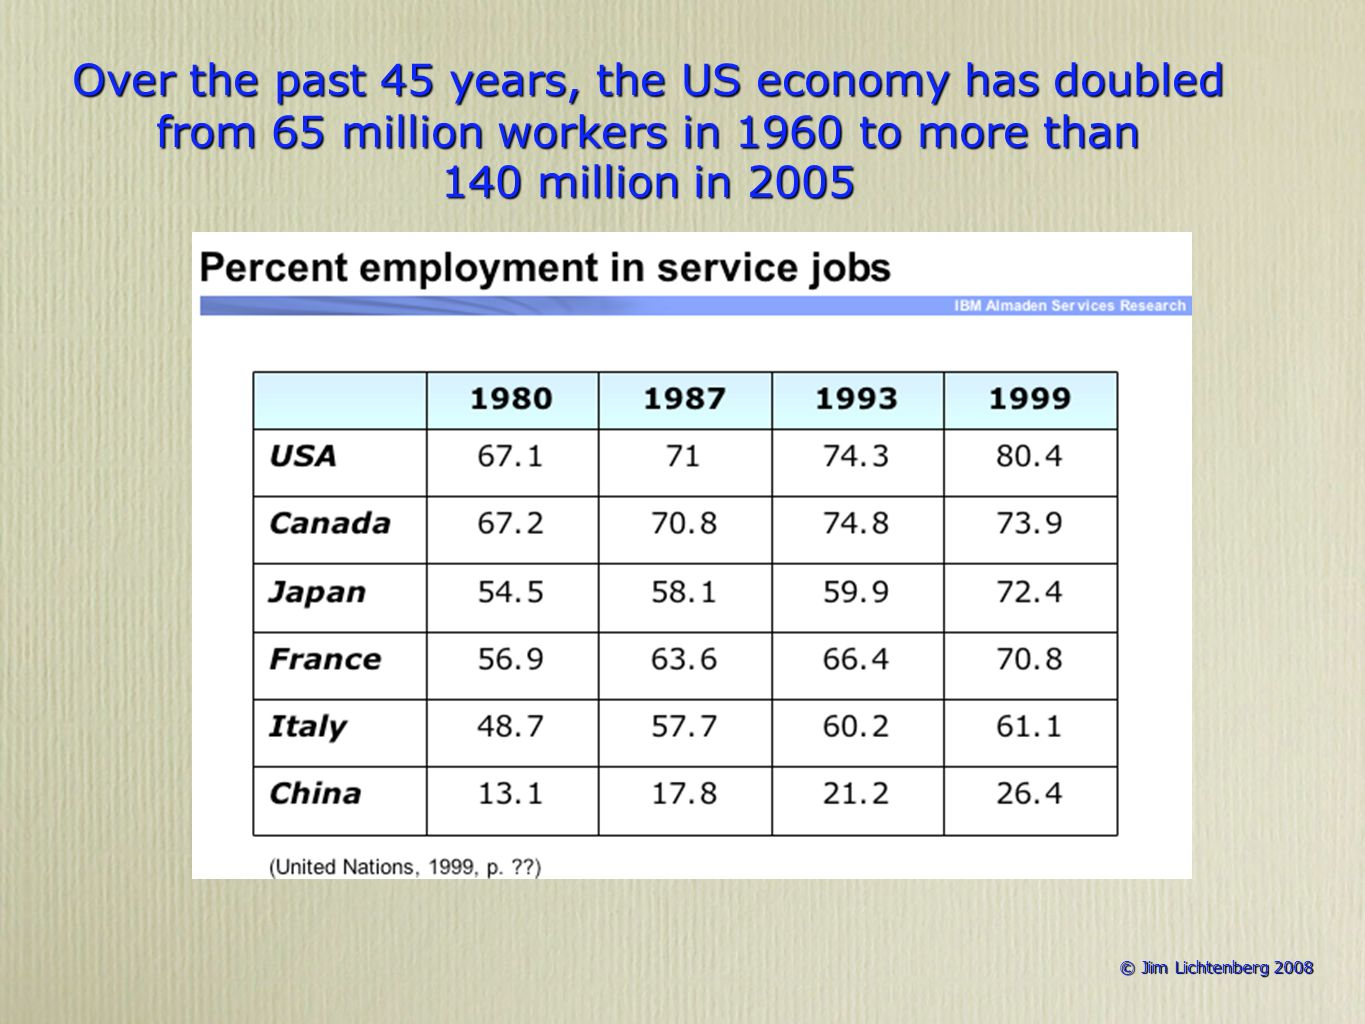 © Jim Lichtenberg 2008 © Jim Lichtenberg 2008 Over the past 45 years, the US economy has doubled from 65 million workers in 1960 to more than 140 million in 2005